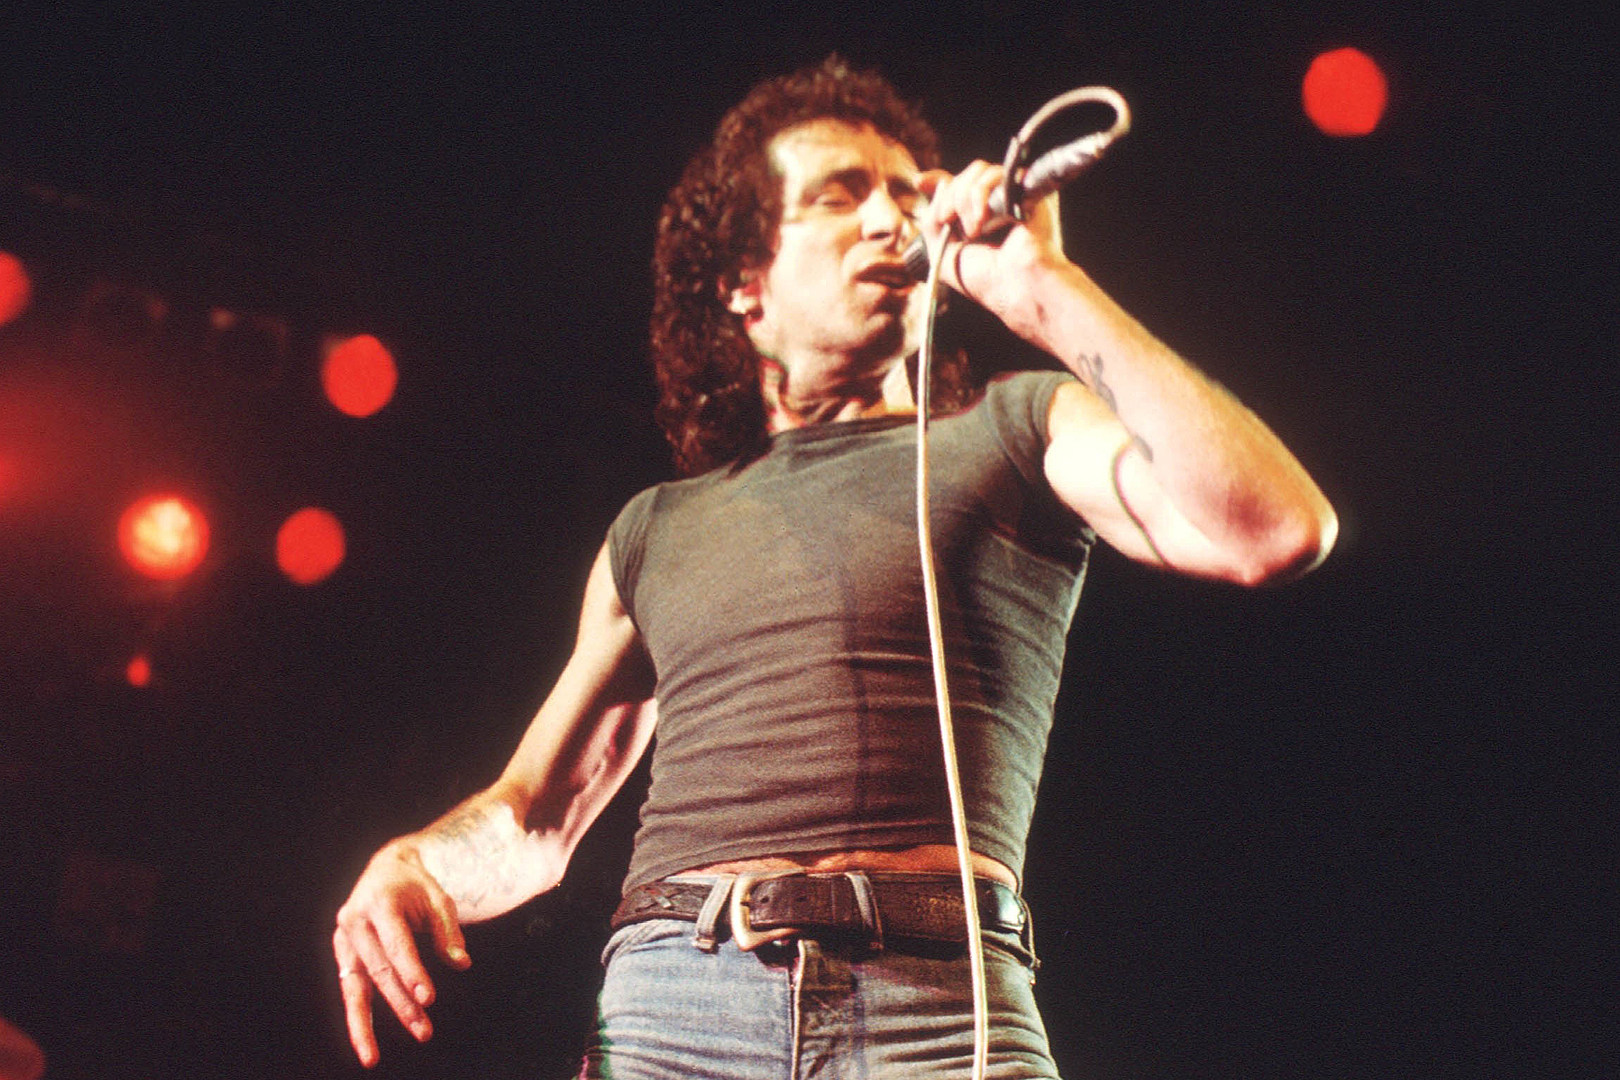 Bon Scott Letter: Late AC/DC Vocalist's Candid Note Sells to Surprising Buyer